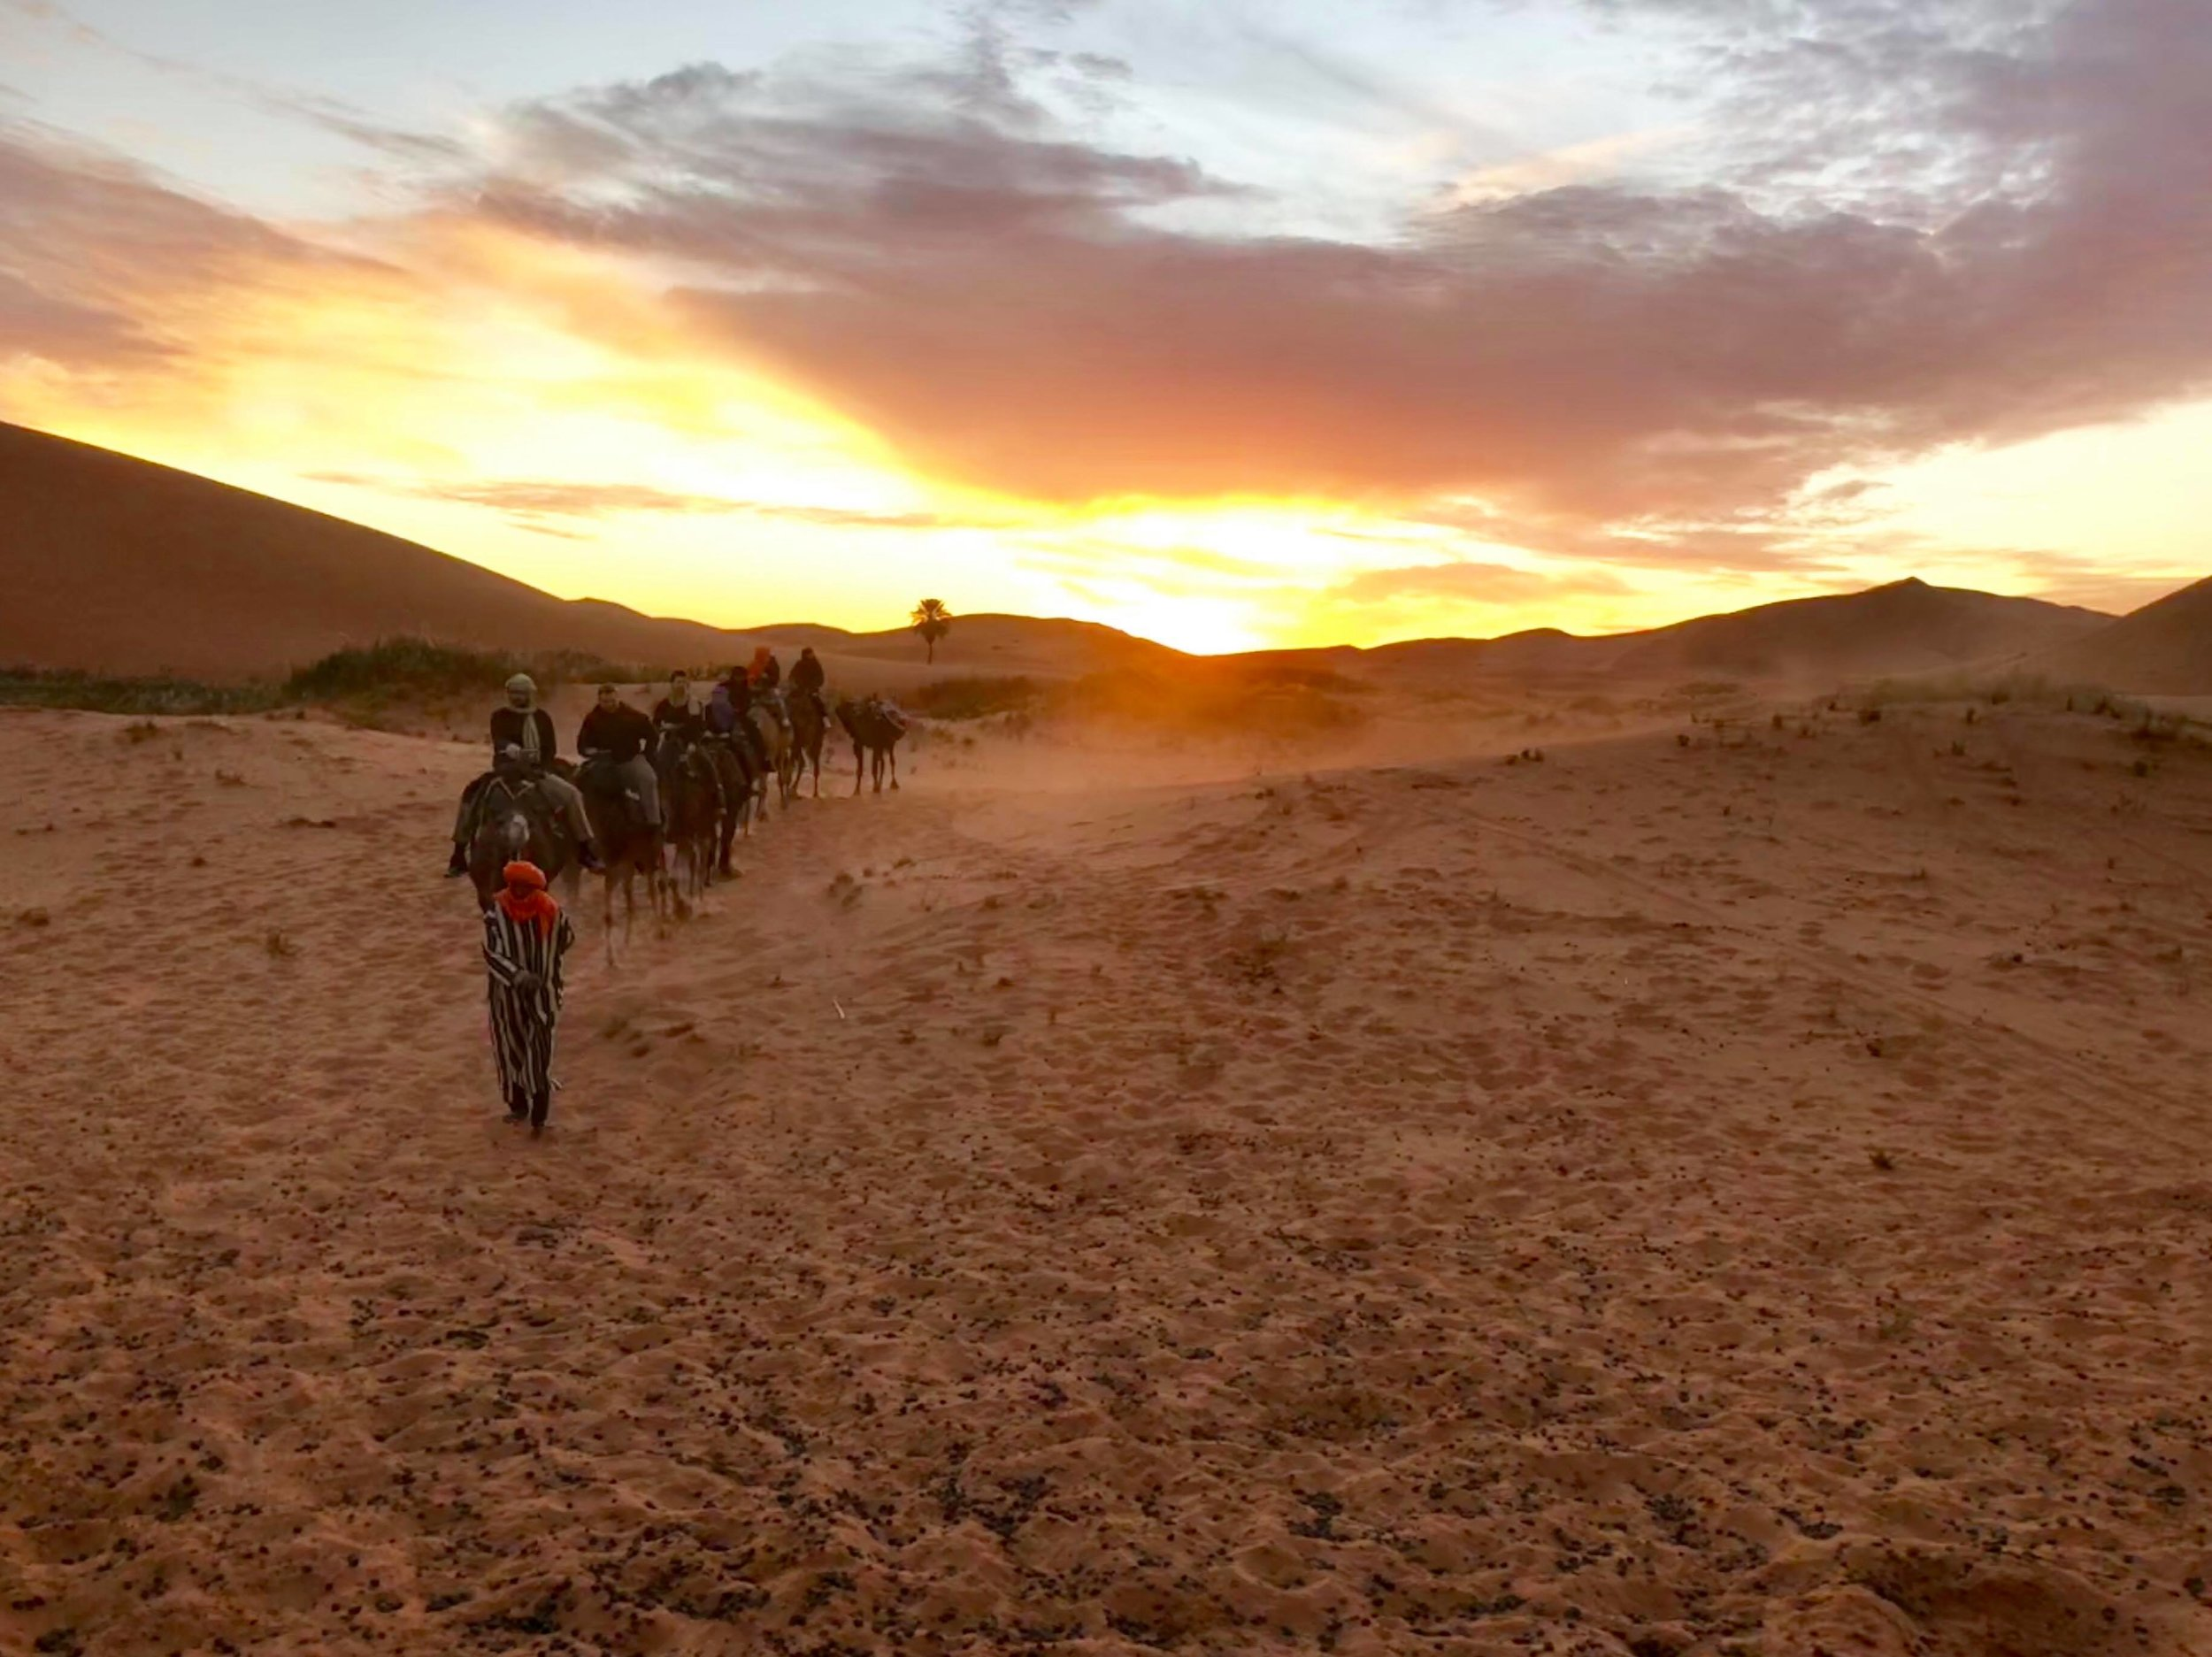 As we arrive at the camp, our camels are unlatched from one another, and led away to a separate area to rest, one by one.